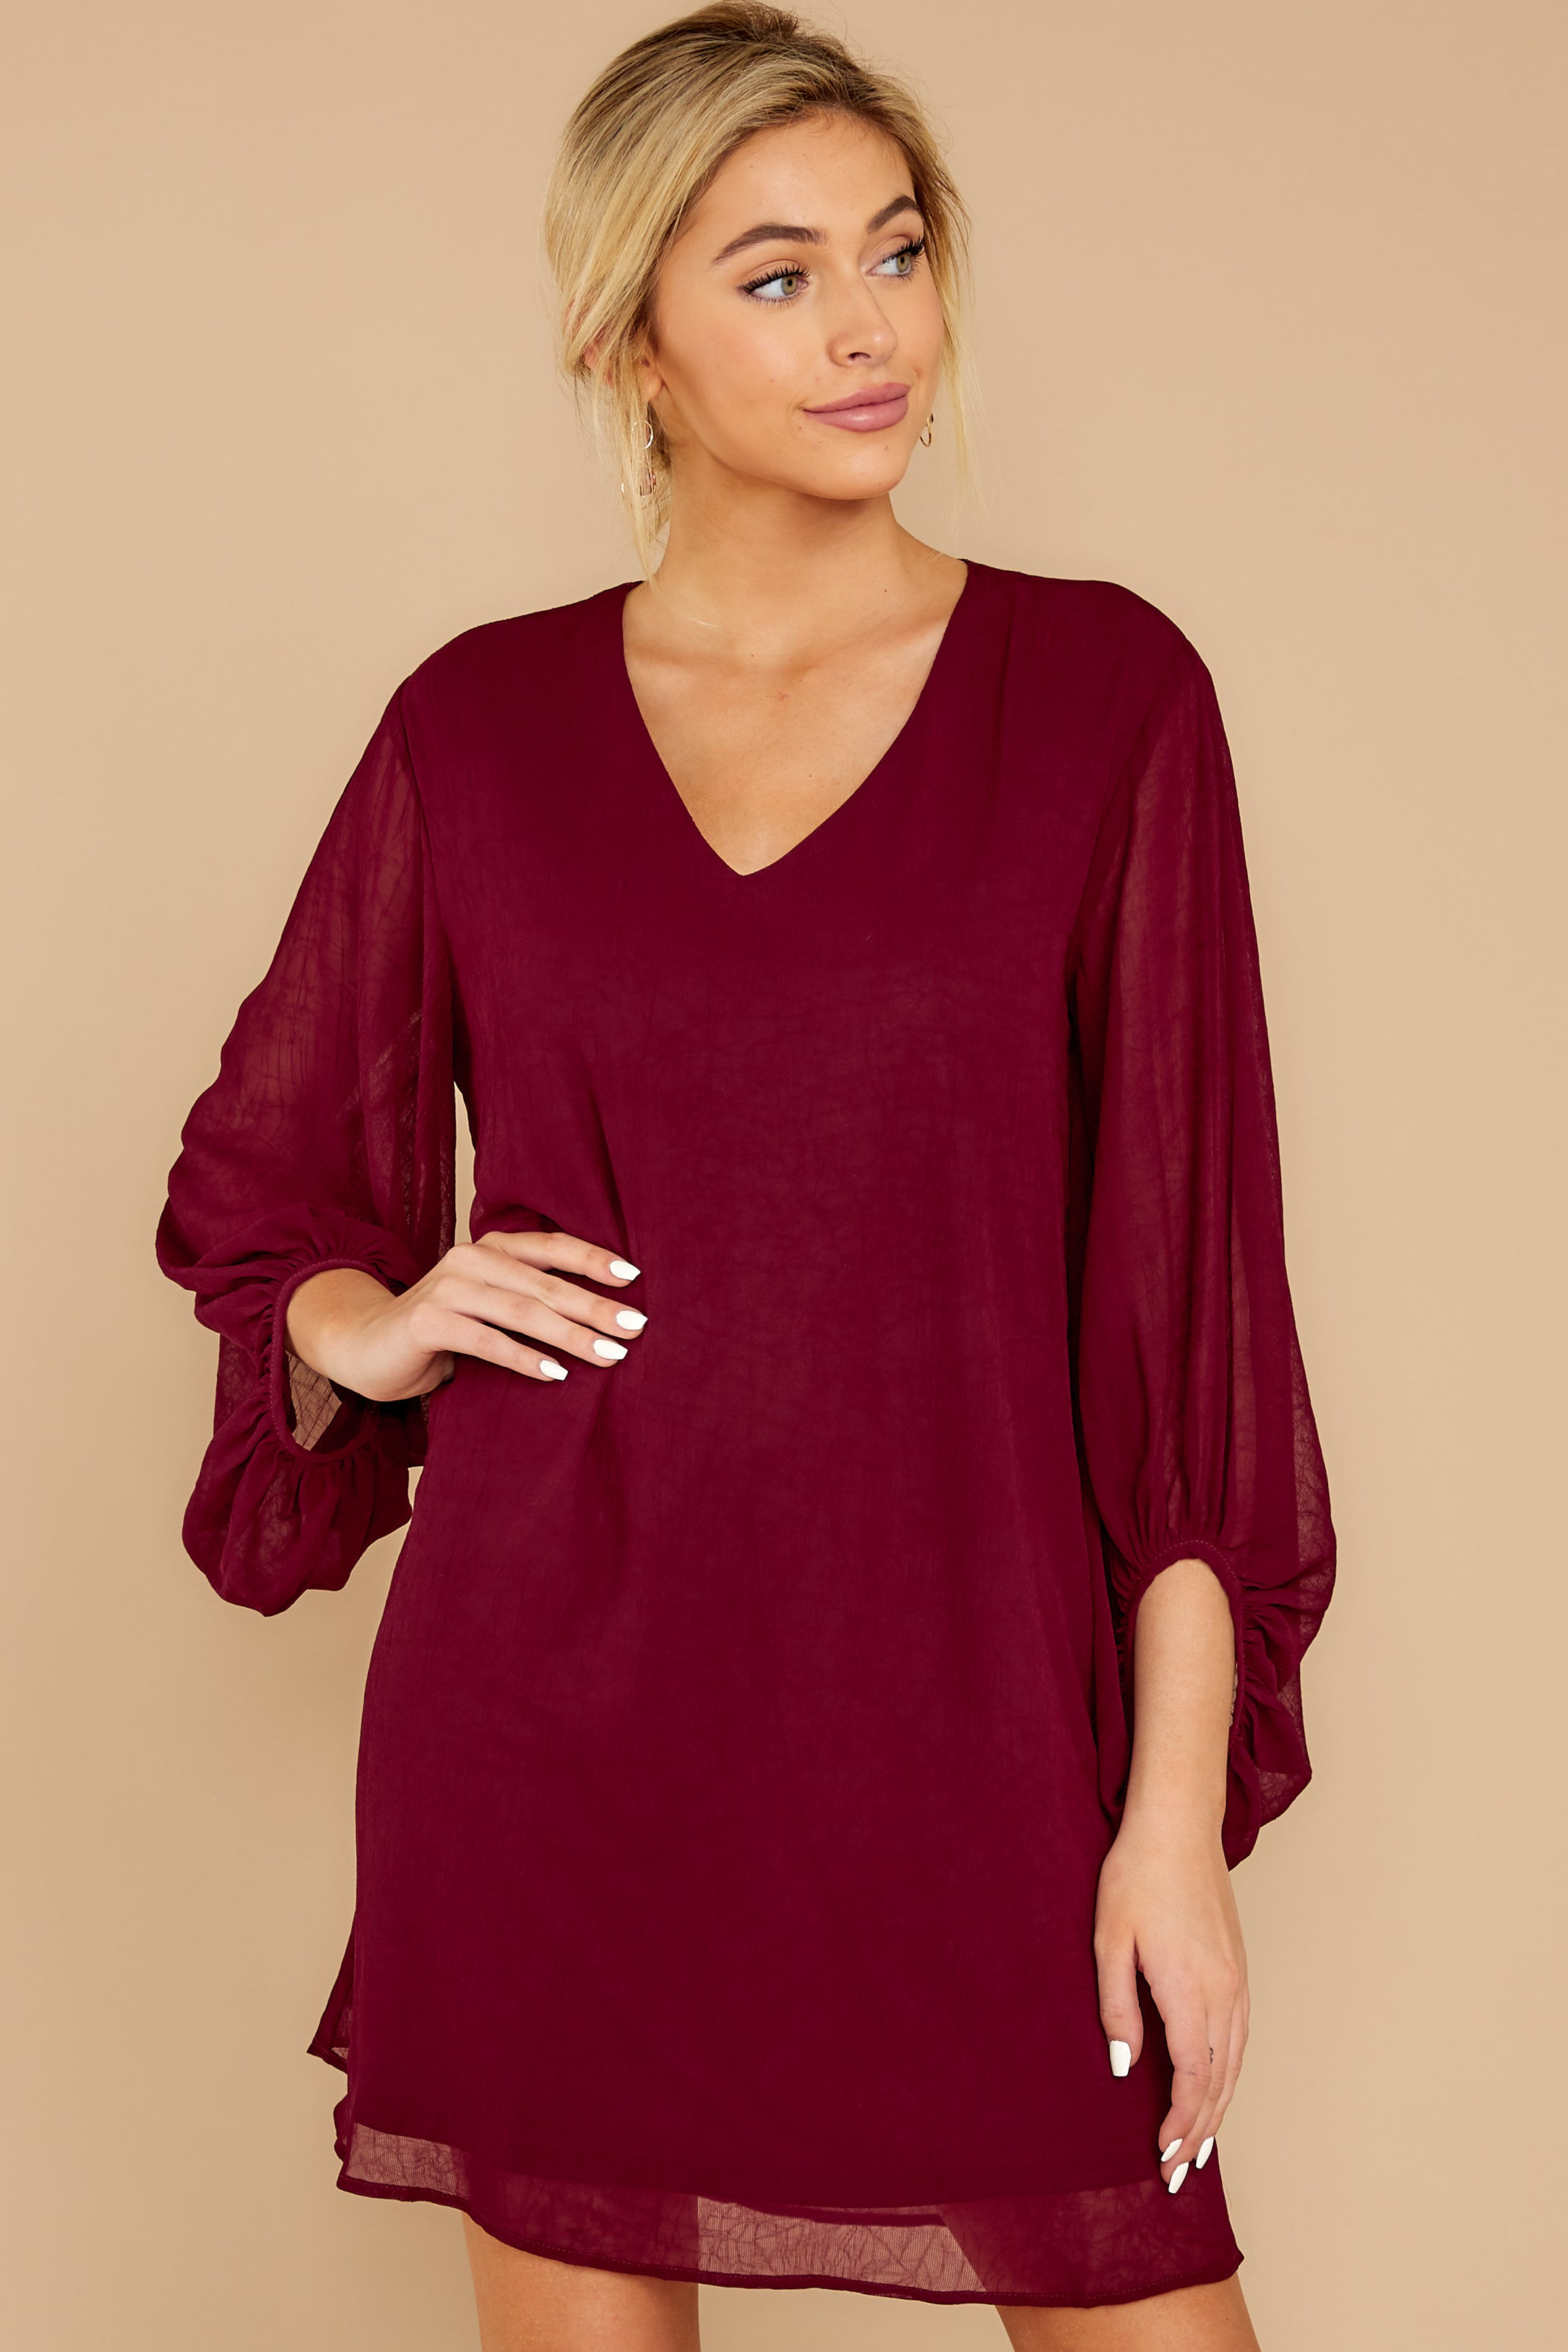 7 Claim To Fame Burgundy Dress at reddress.com